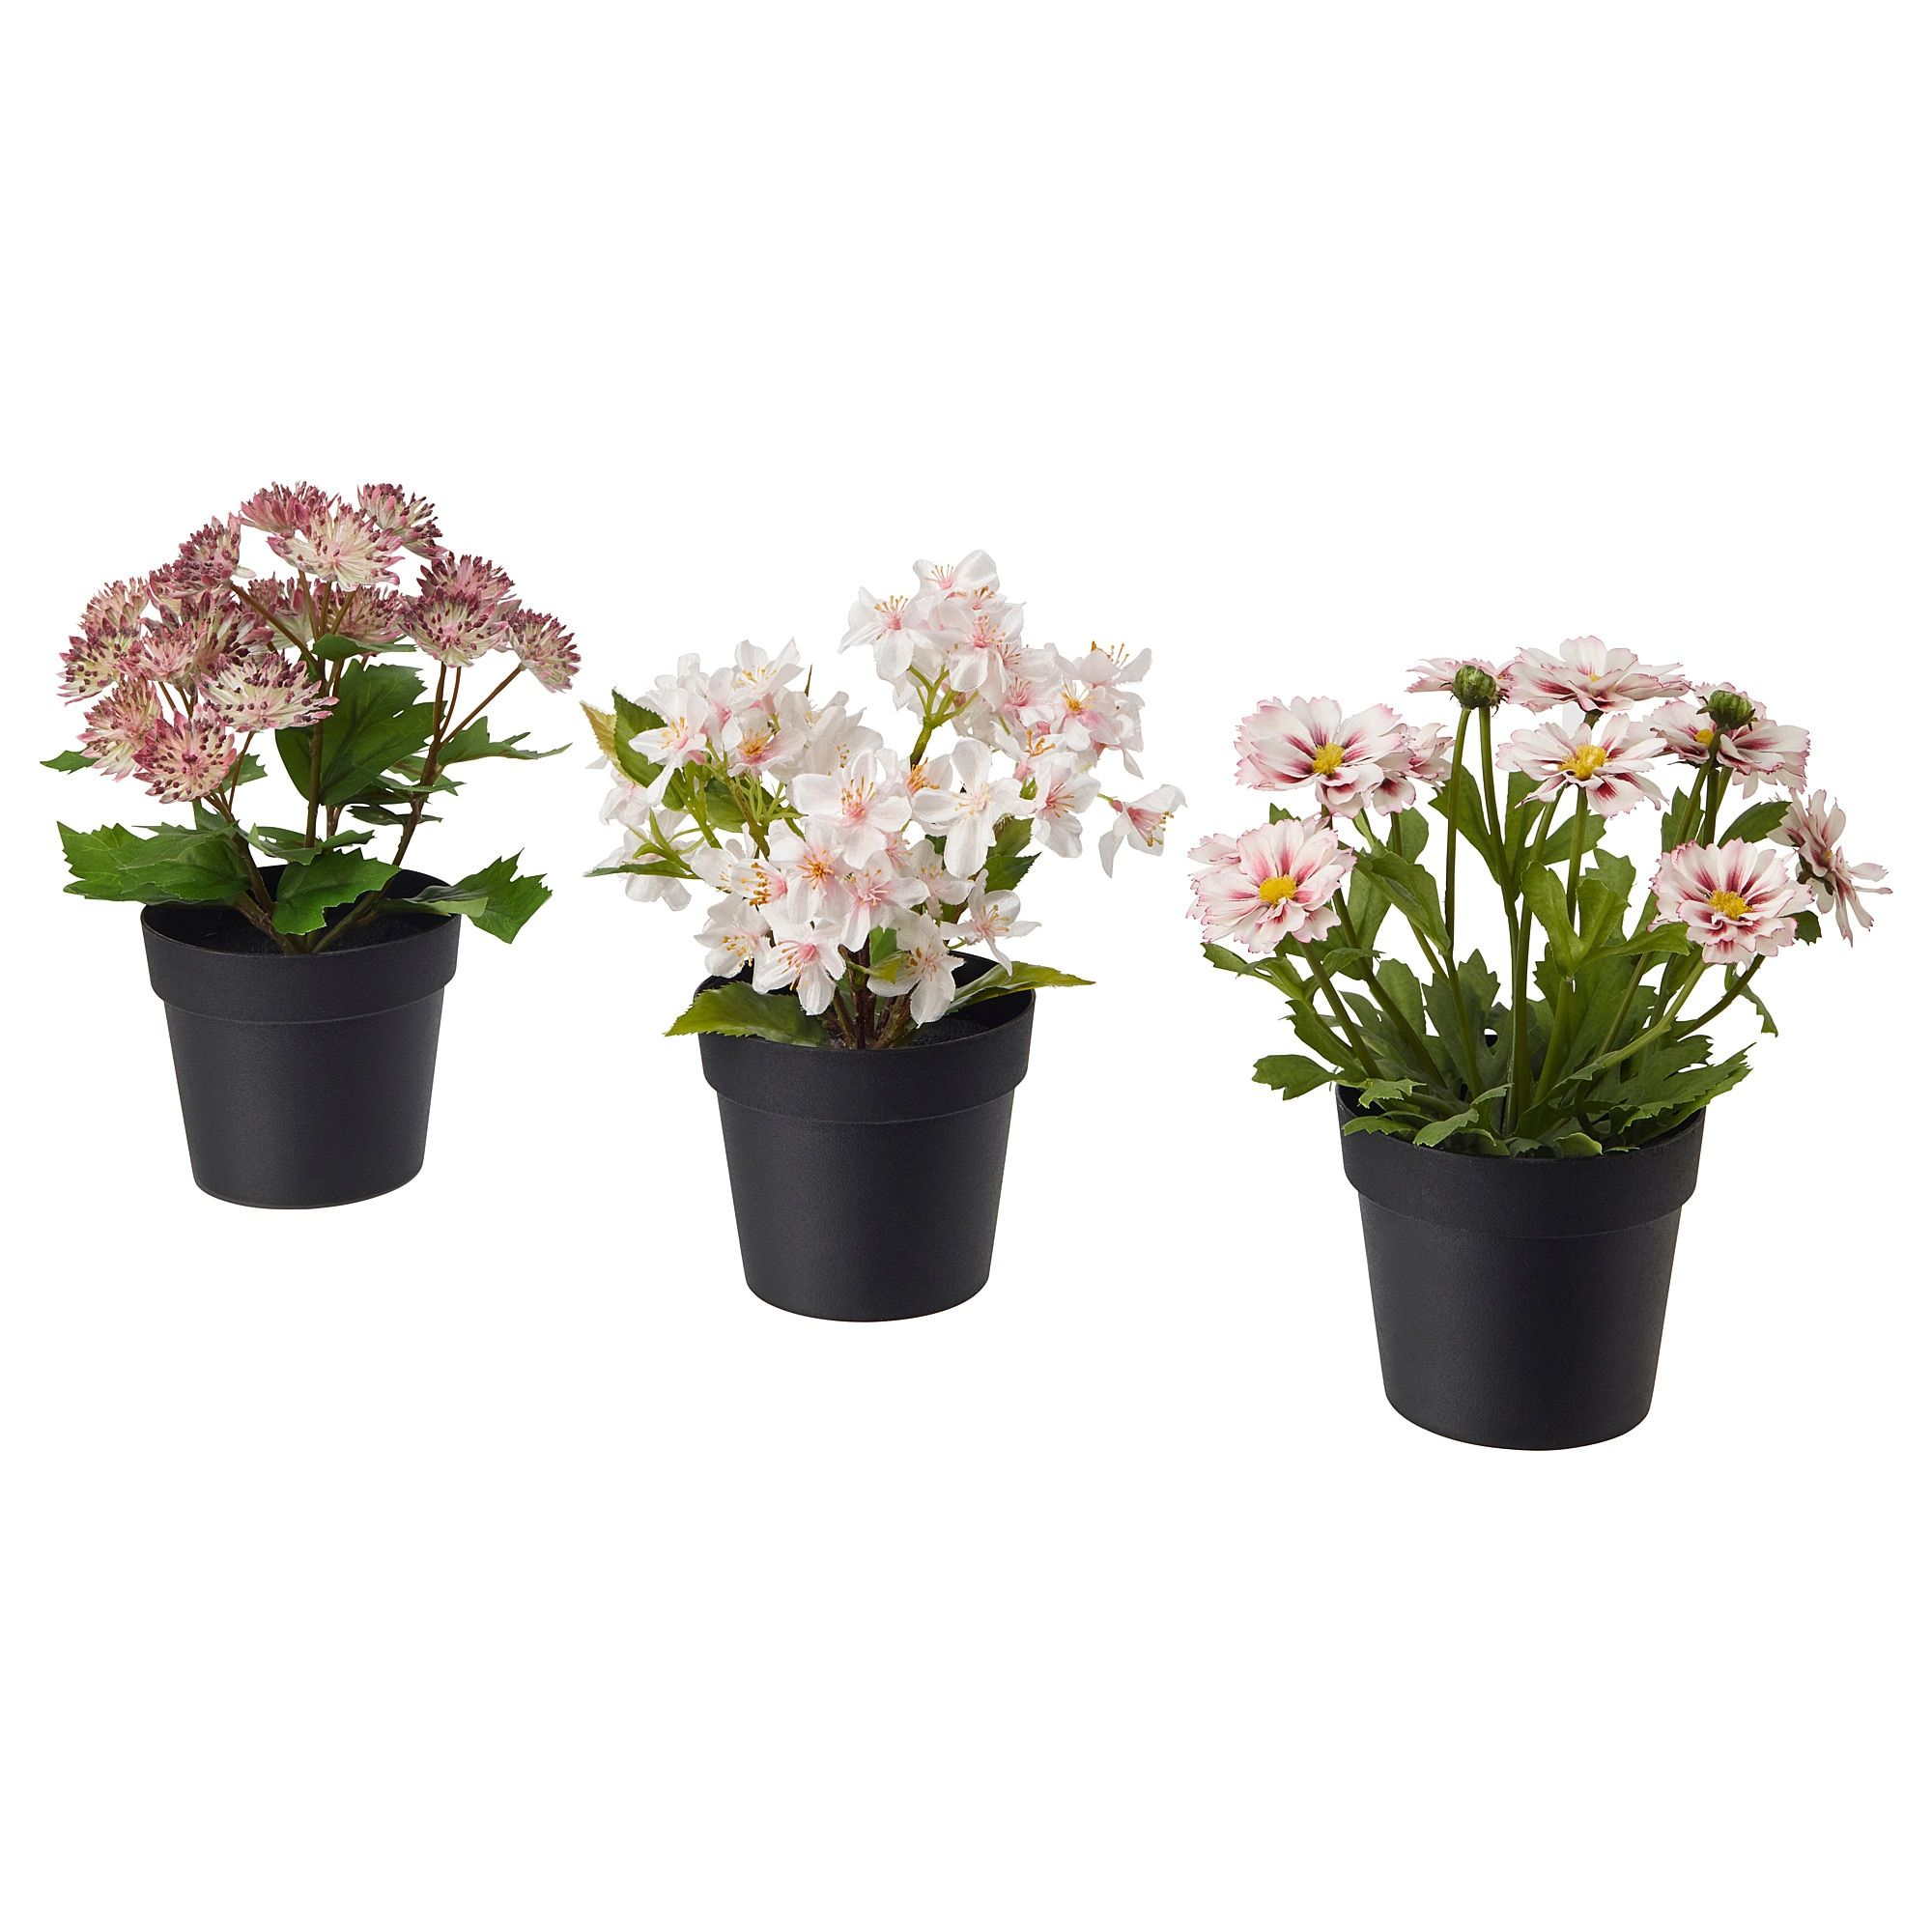 Fejka Artificial Potted Plant Indoor Outdoor Pink Ikea In 2020 Artificial Potted Plants Artificial Flowers And Plants Fake Plants Decor